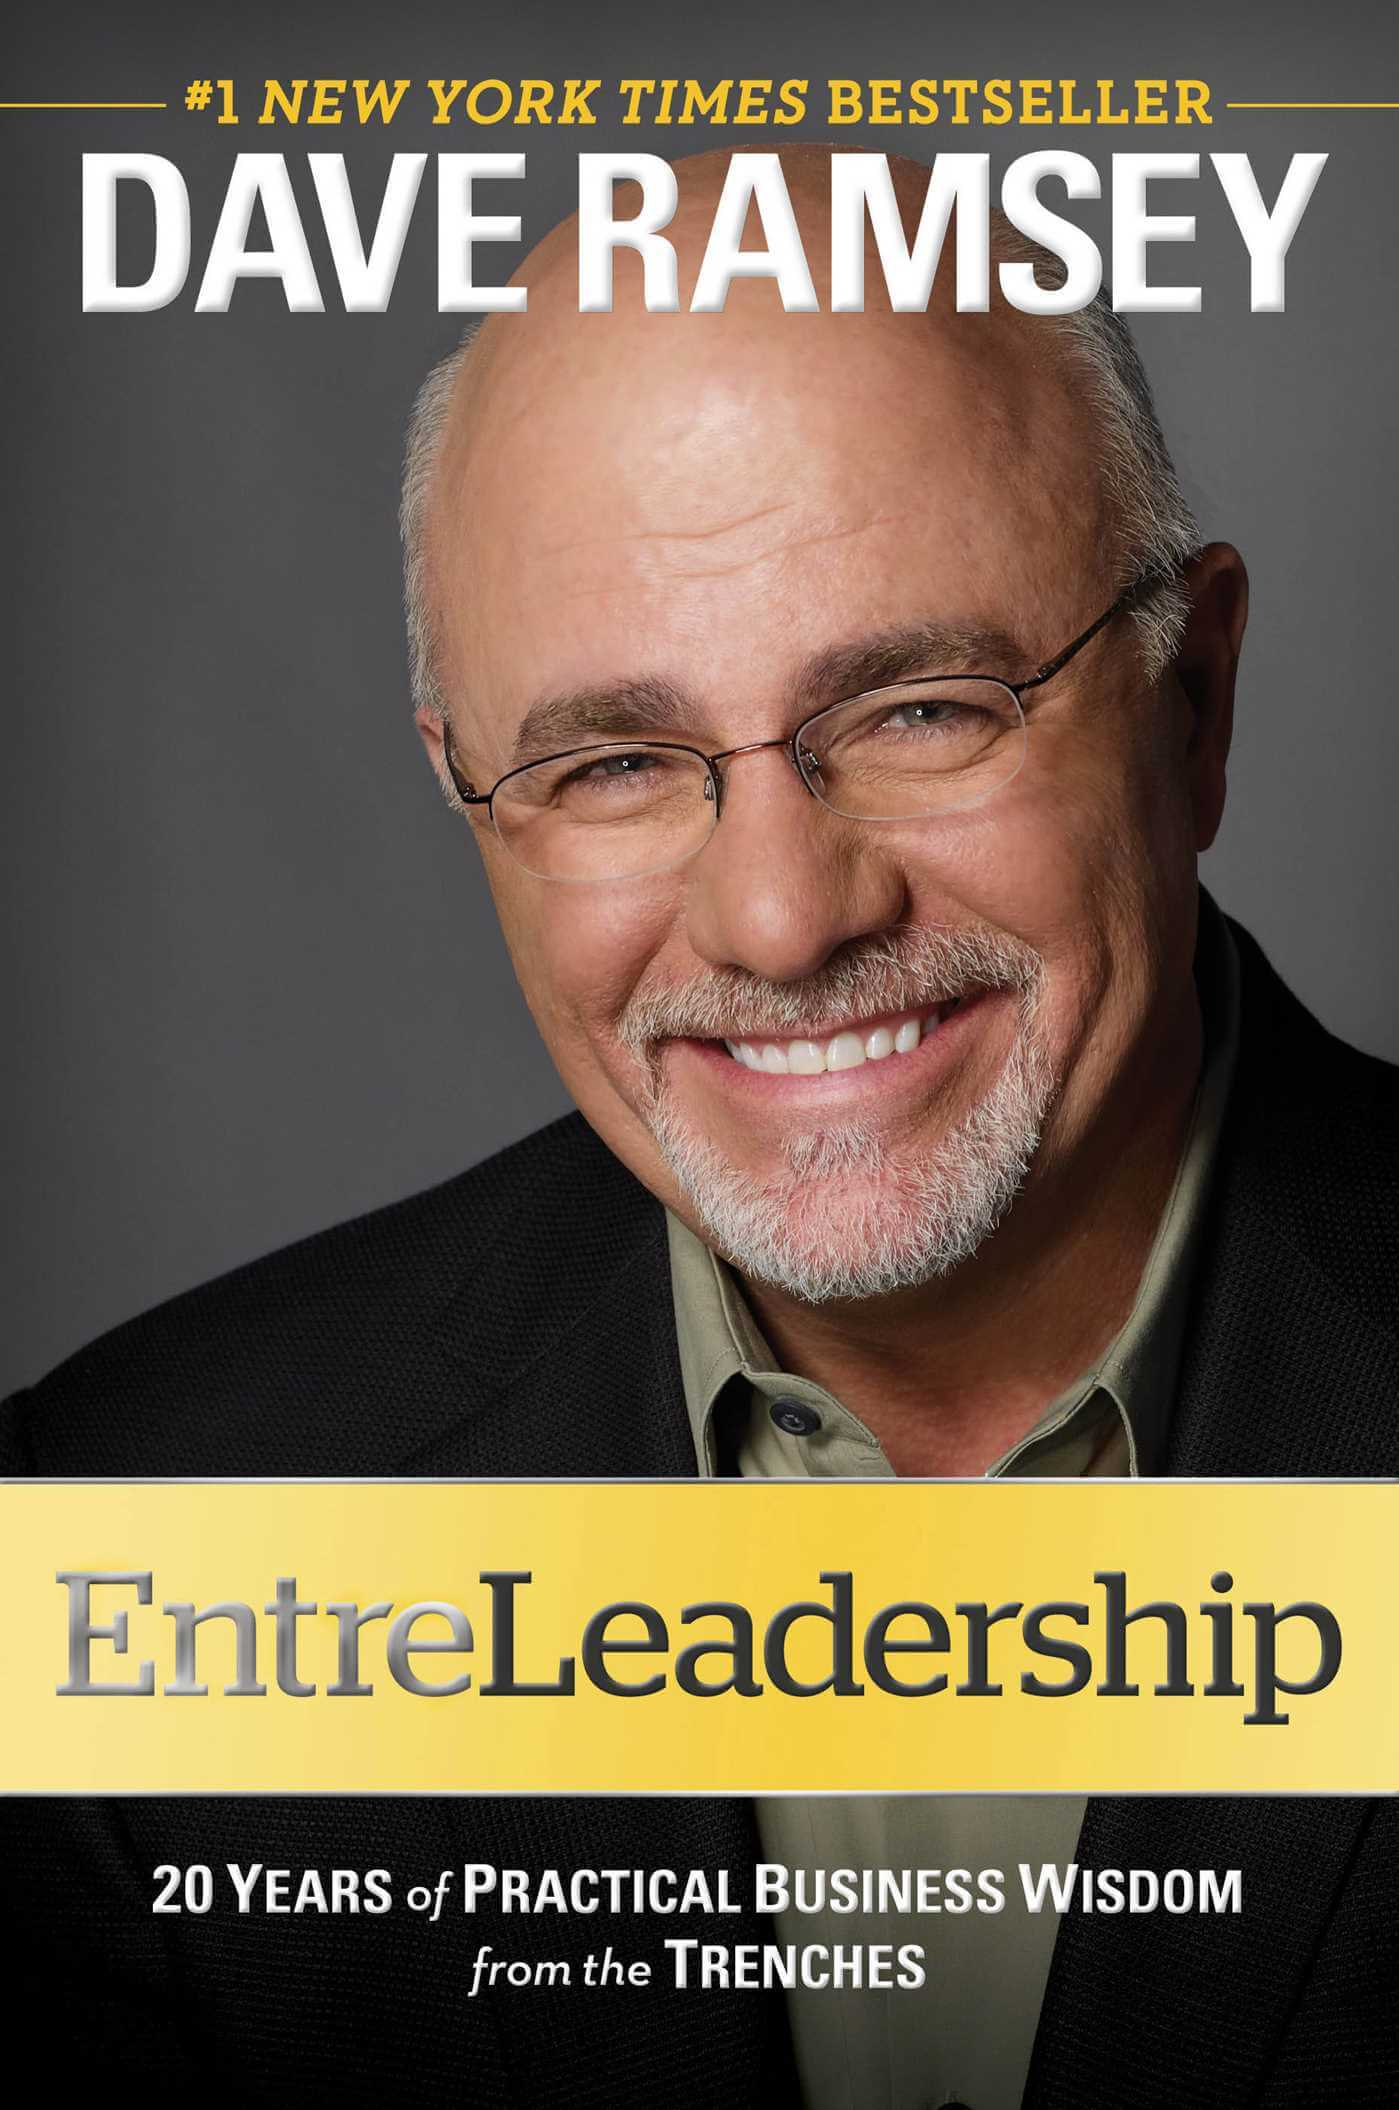 Entreleadership-20-Years-of-Practical-Business-Wisdom-from-the-Trenches-Dave-Ramsey